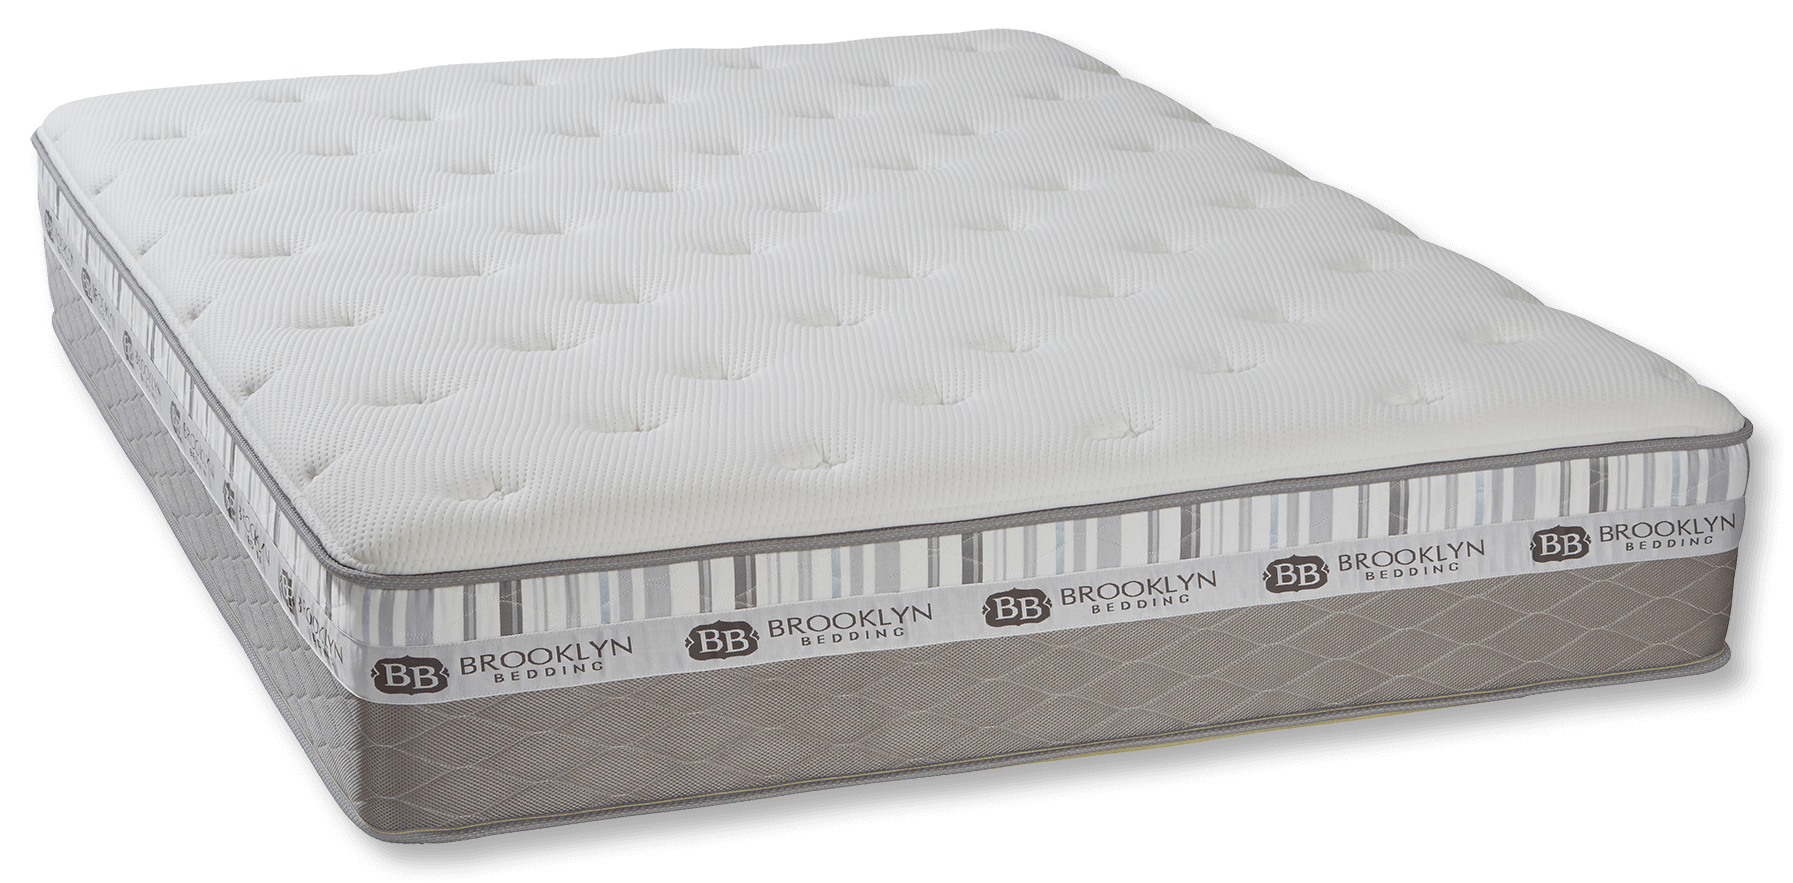 Brooklyn bedding mattress review bestmattressever for Brooklyn bedding reviews